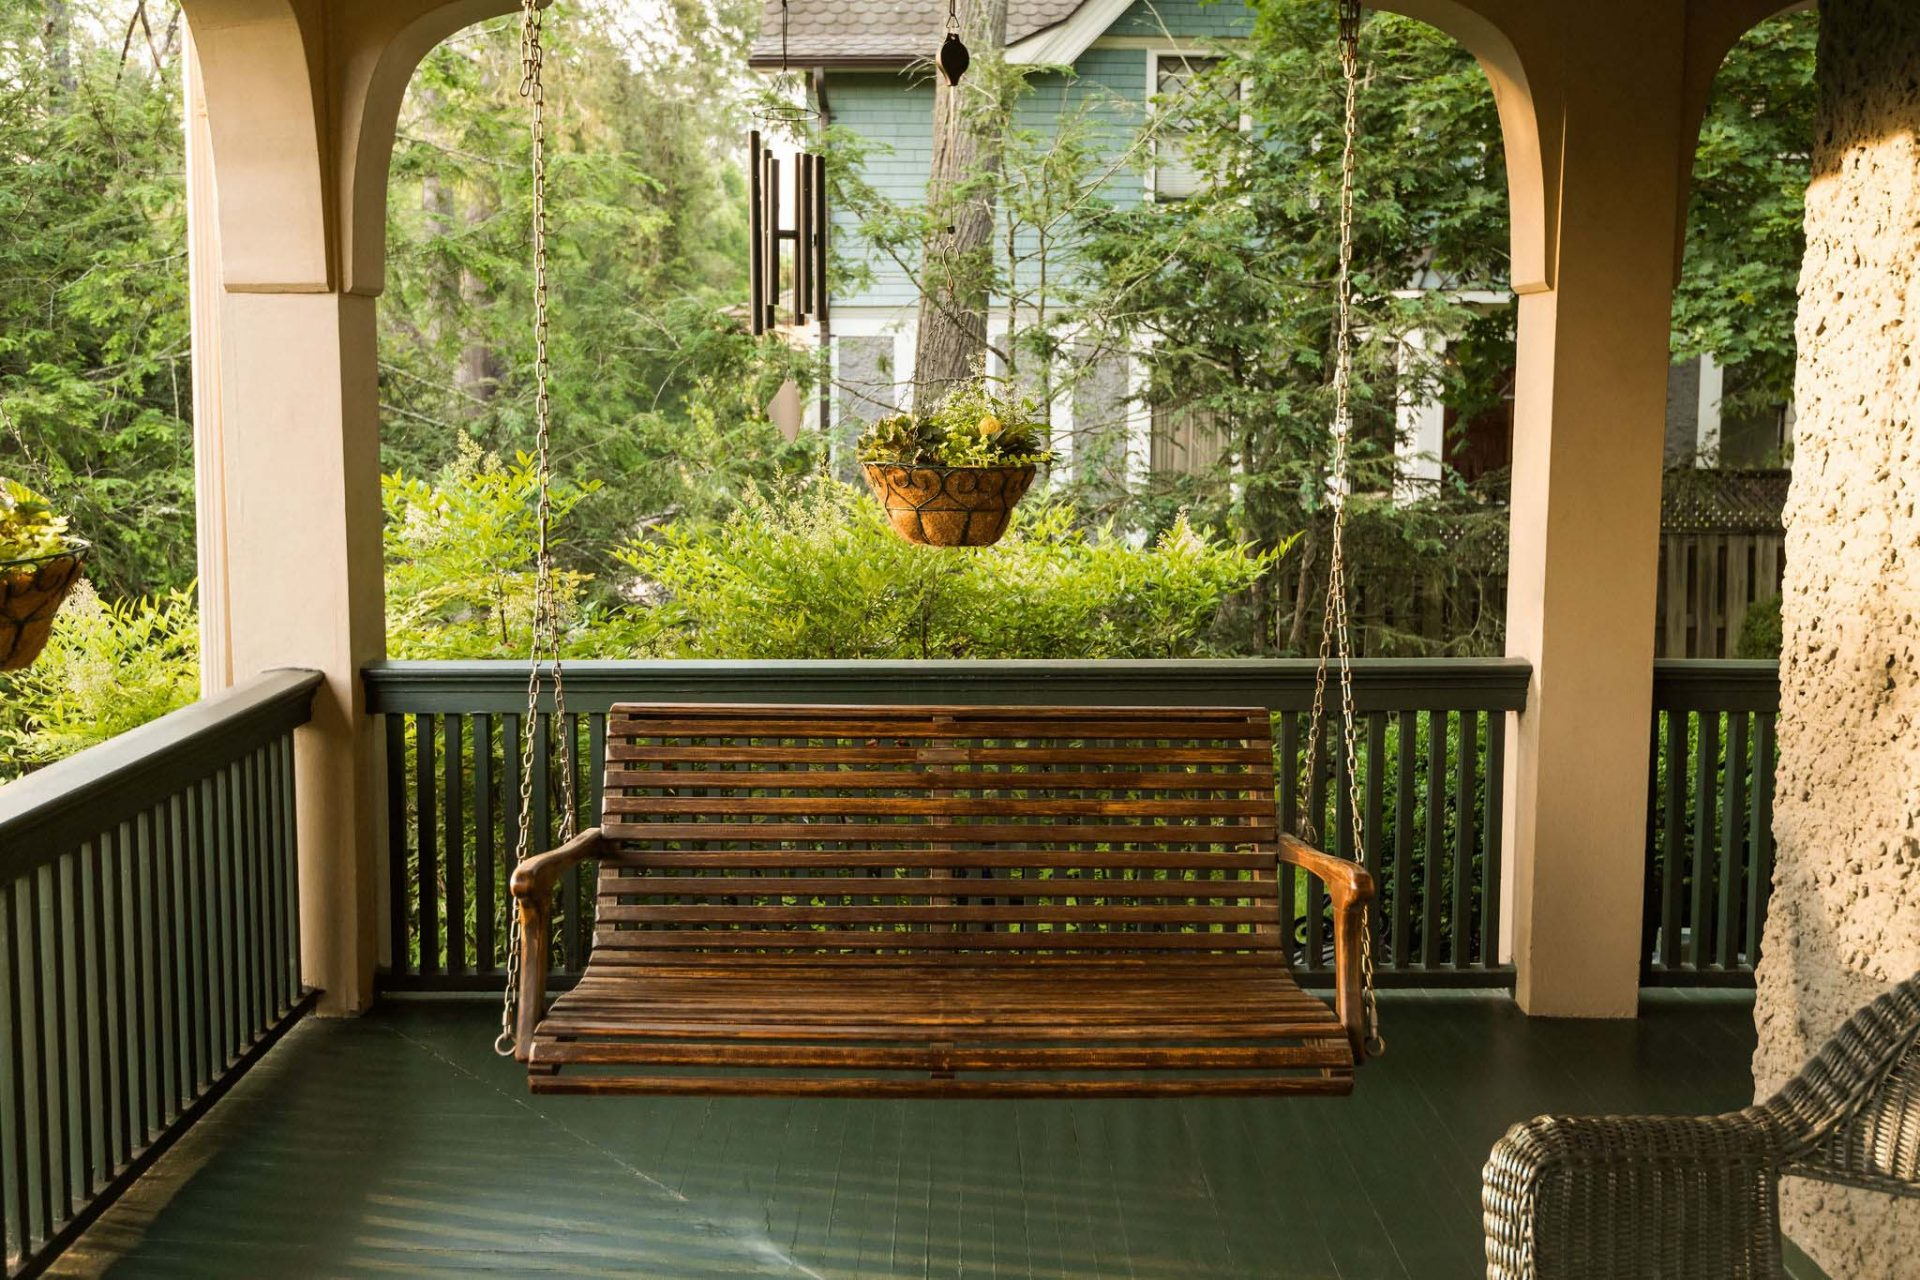 A wooden porch swing hanging at the far end of the porch painted in dark green, with green bushes and trees in the background.